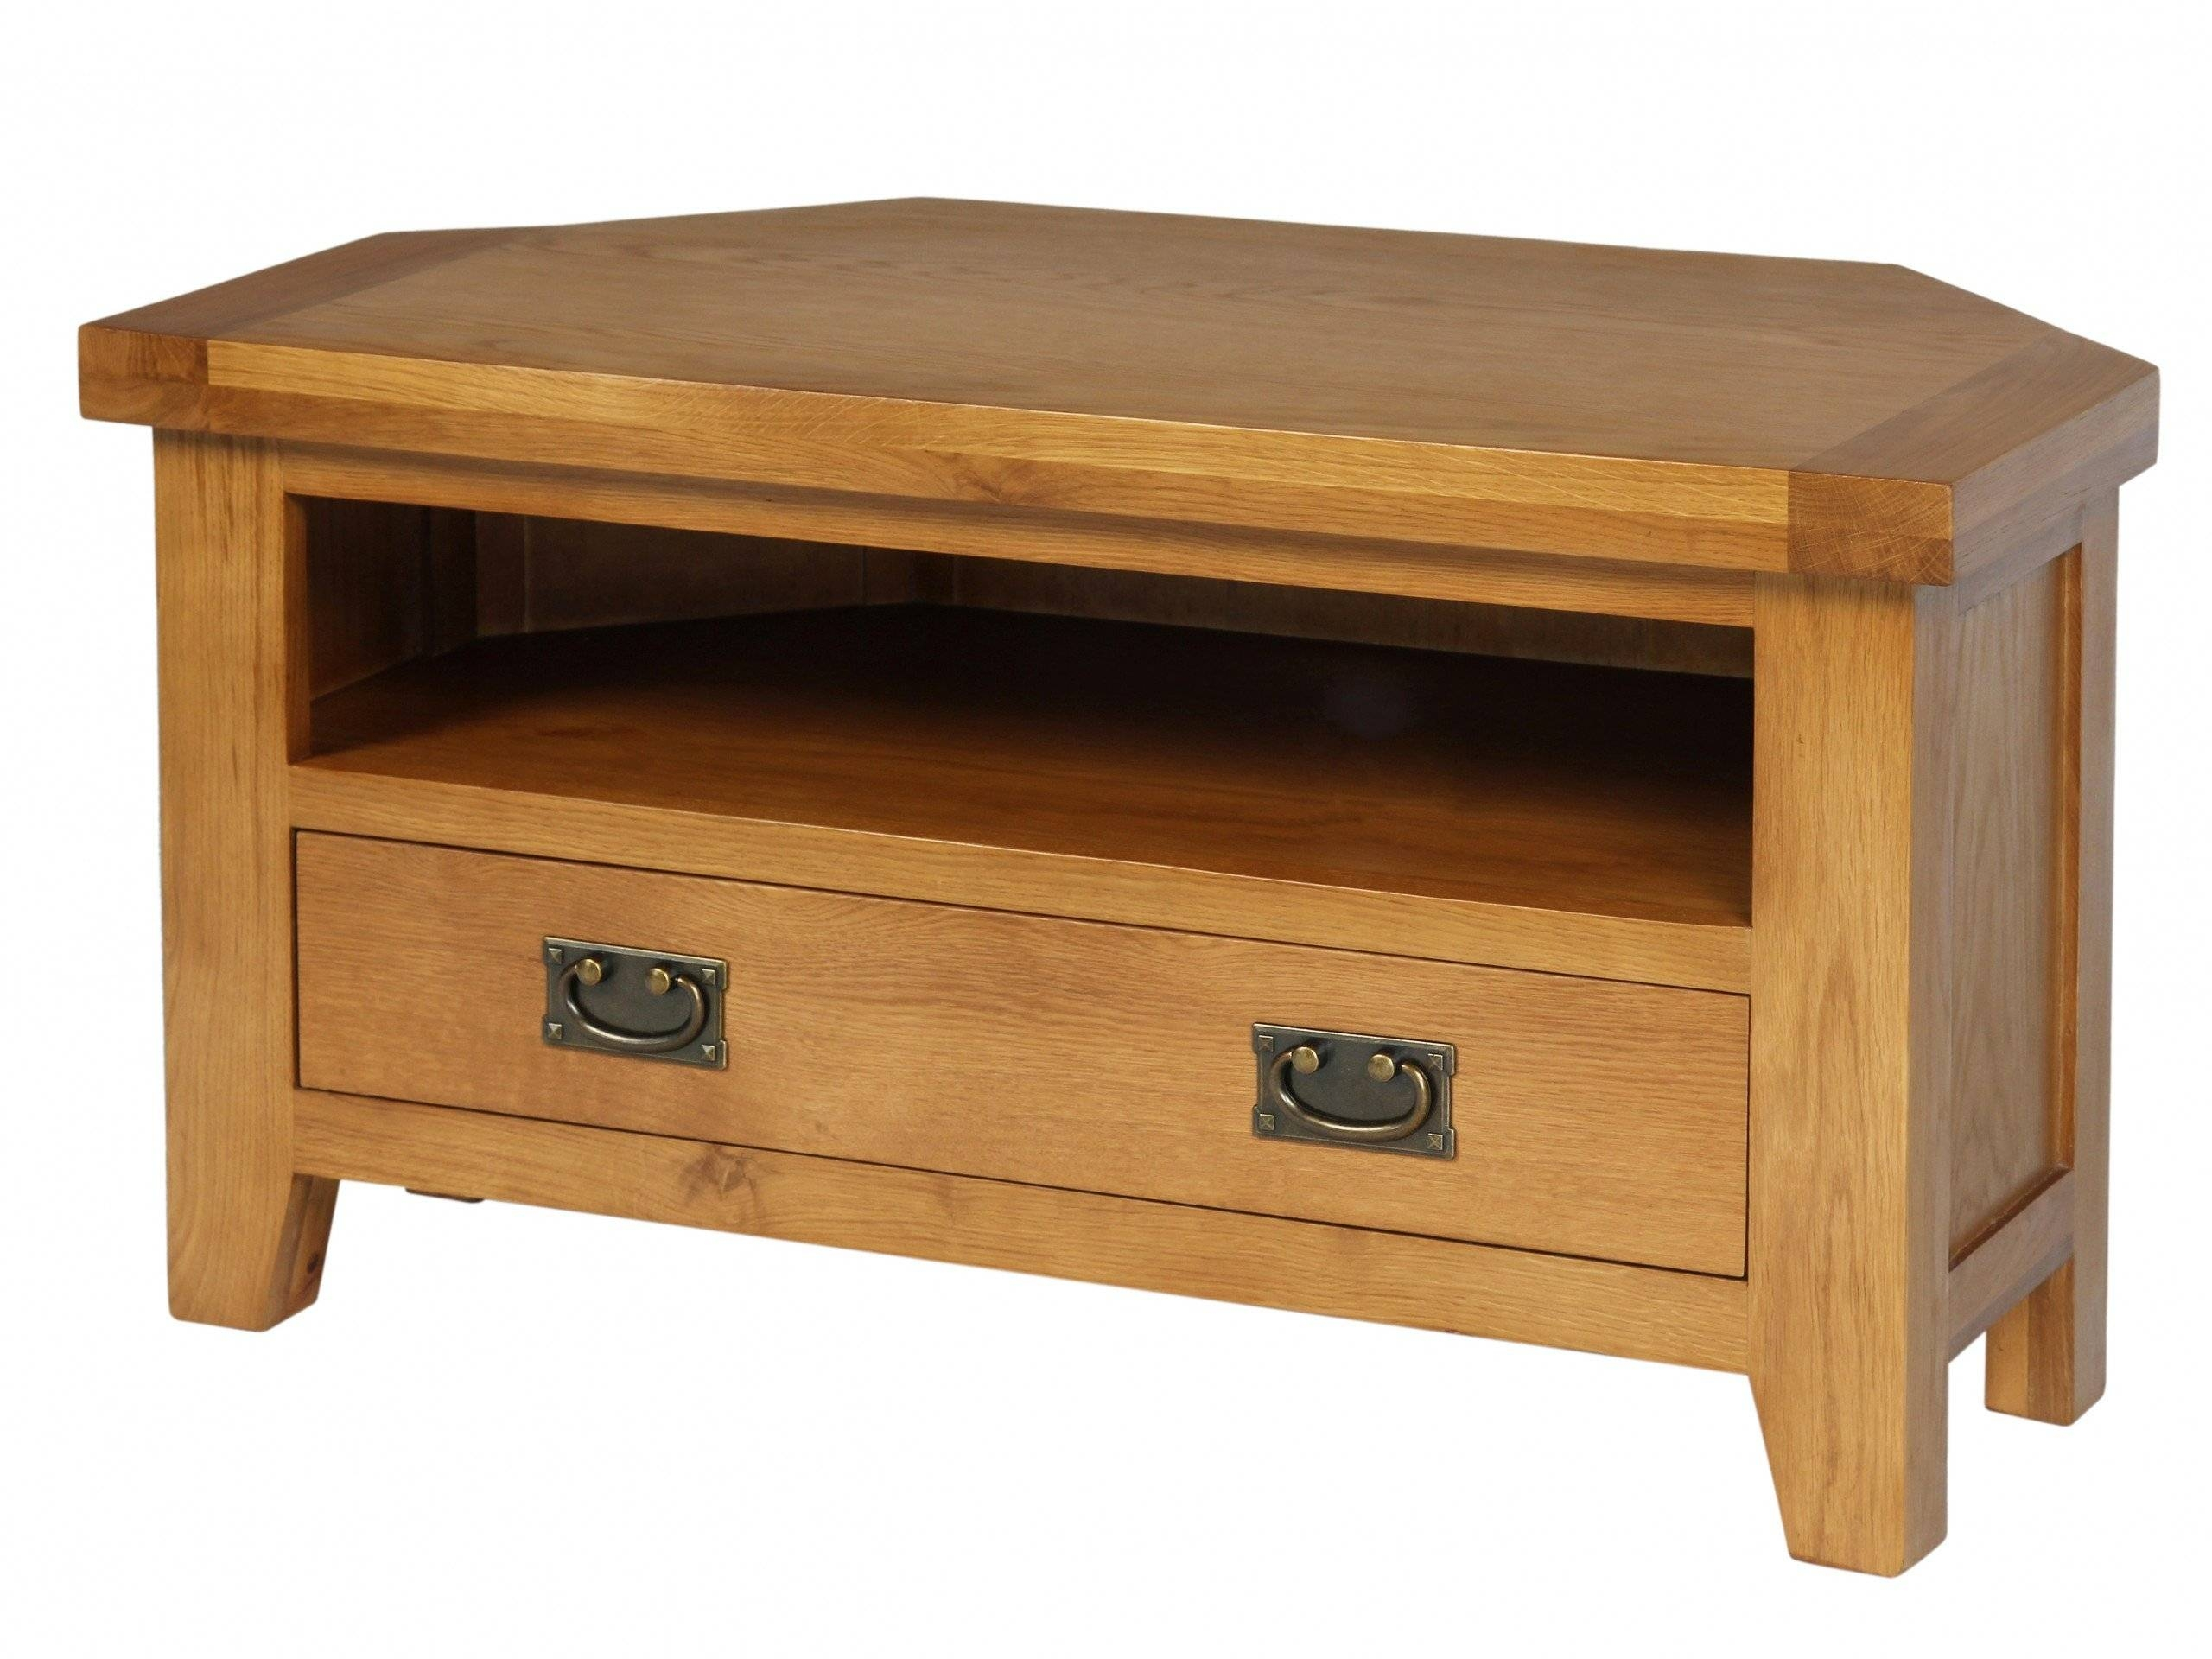 Country Oak Corner Tv Unit Intended For Corner Wooden Tv Cabinets (View 7 of 15)